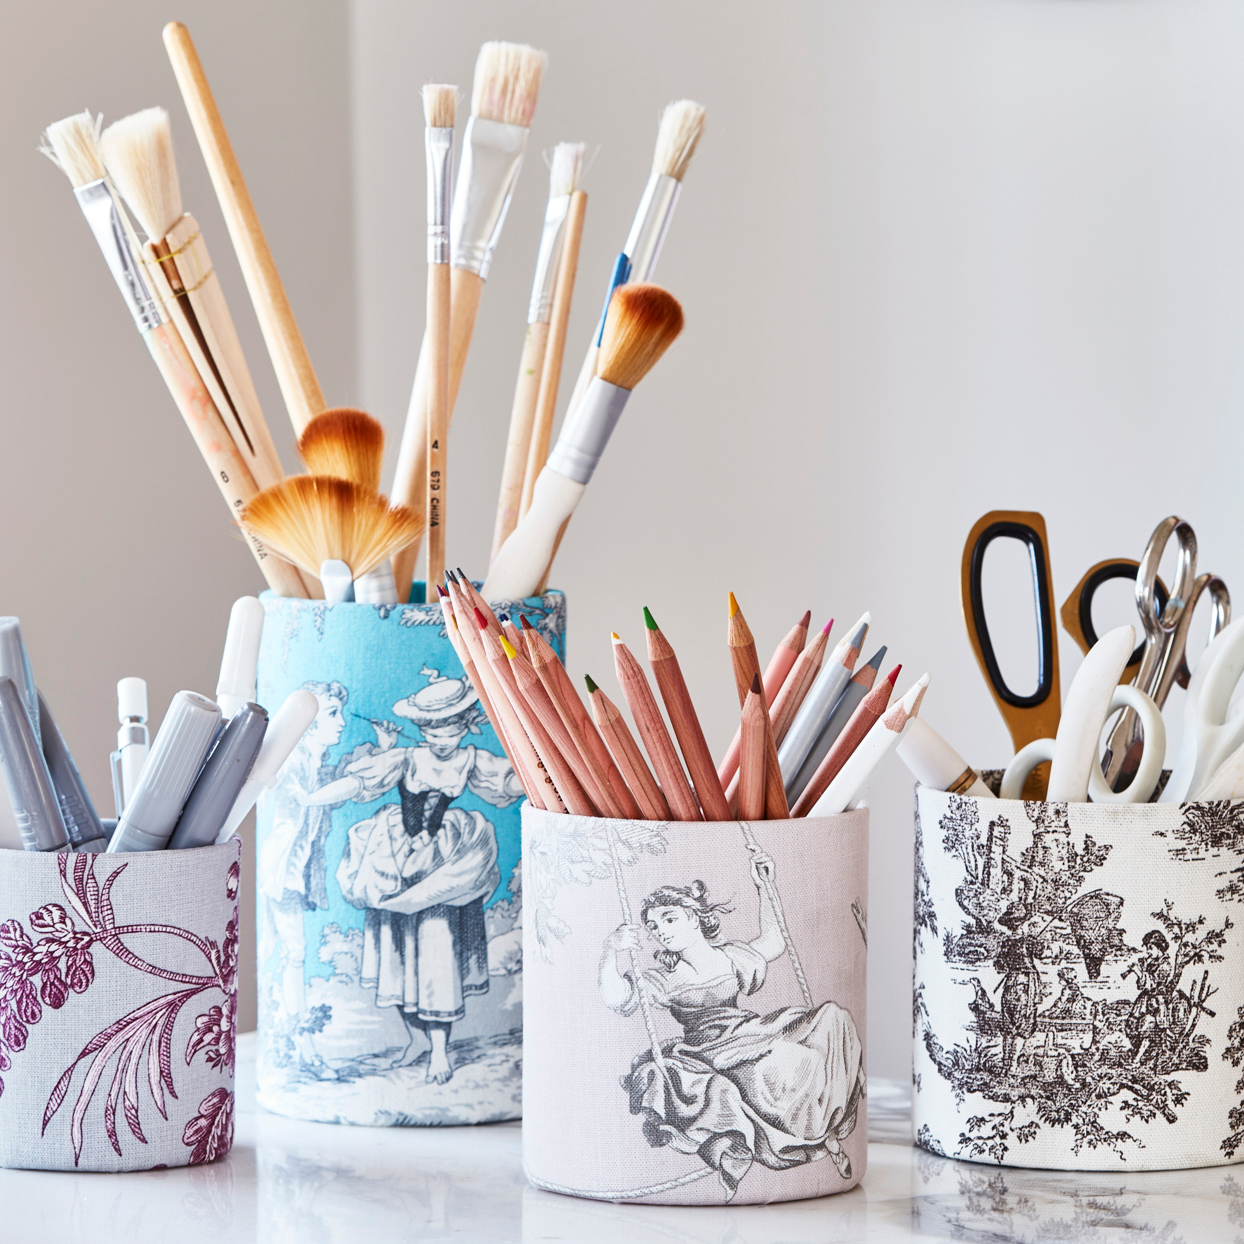 painted utensil cups with paint brushes and colored pencils